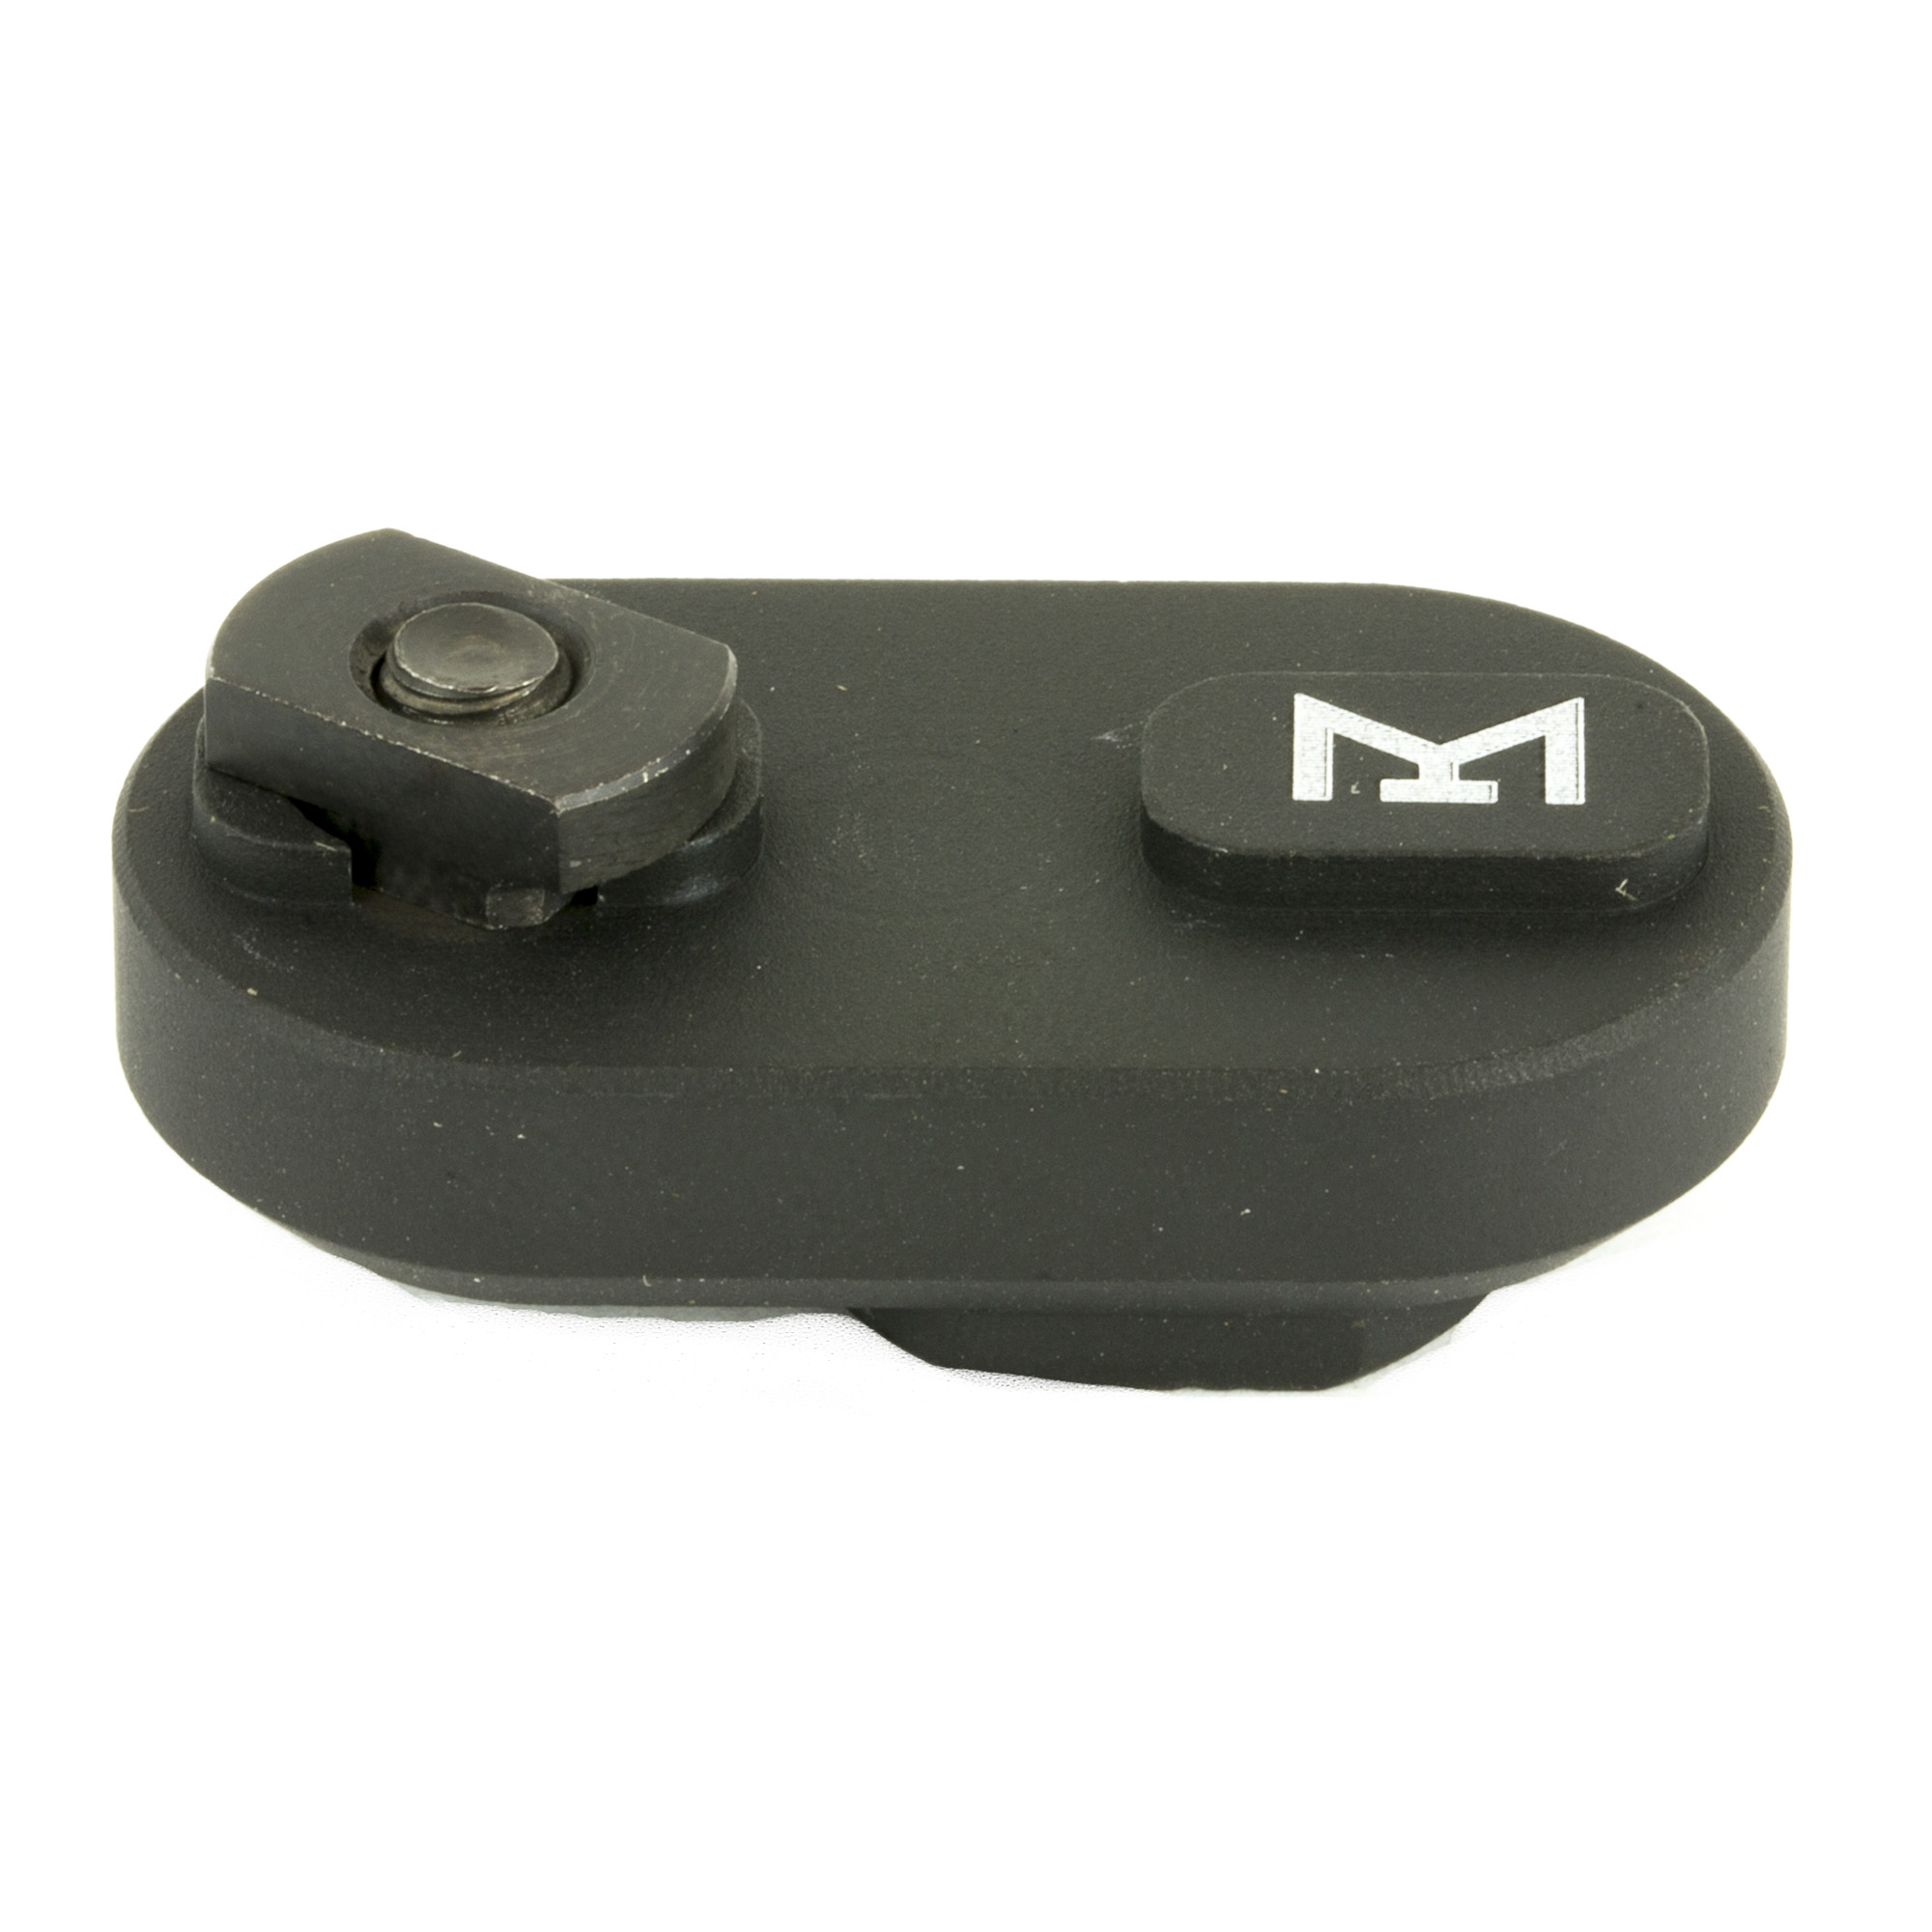 Samson's M-LOK QD Sling Point is compatible with all standard size QD sling swivels. The Samson M-LOK QD Sling Point is designed to M-LOK spec and will attach to any M-LOK attachment point. It features a limited rotation feature that only allows the sling swivel to rotate 90 degrees. The simple and small design reduces the amount of space needed to attach your sling to your handguard. The ML-QD include all necessary hardware for mounting to M-LOK slots and are a great addition to any M-LOK version of Samson handguard.